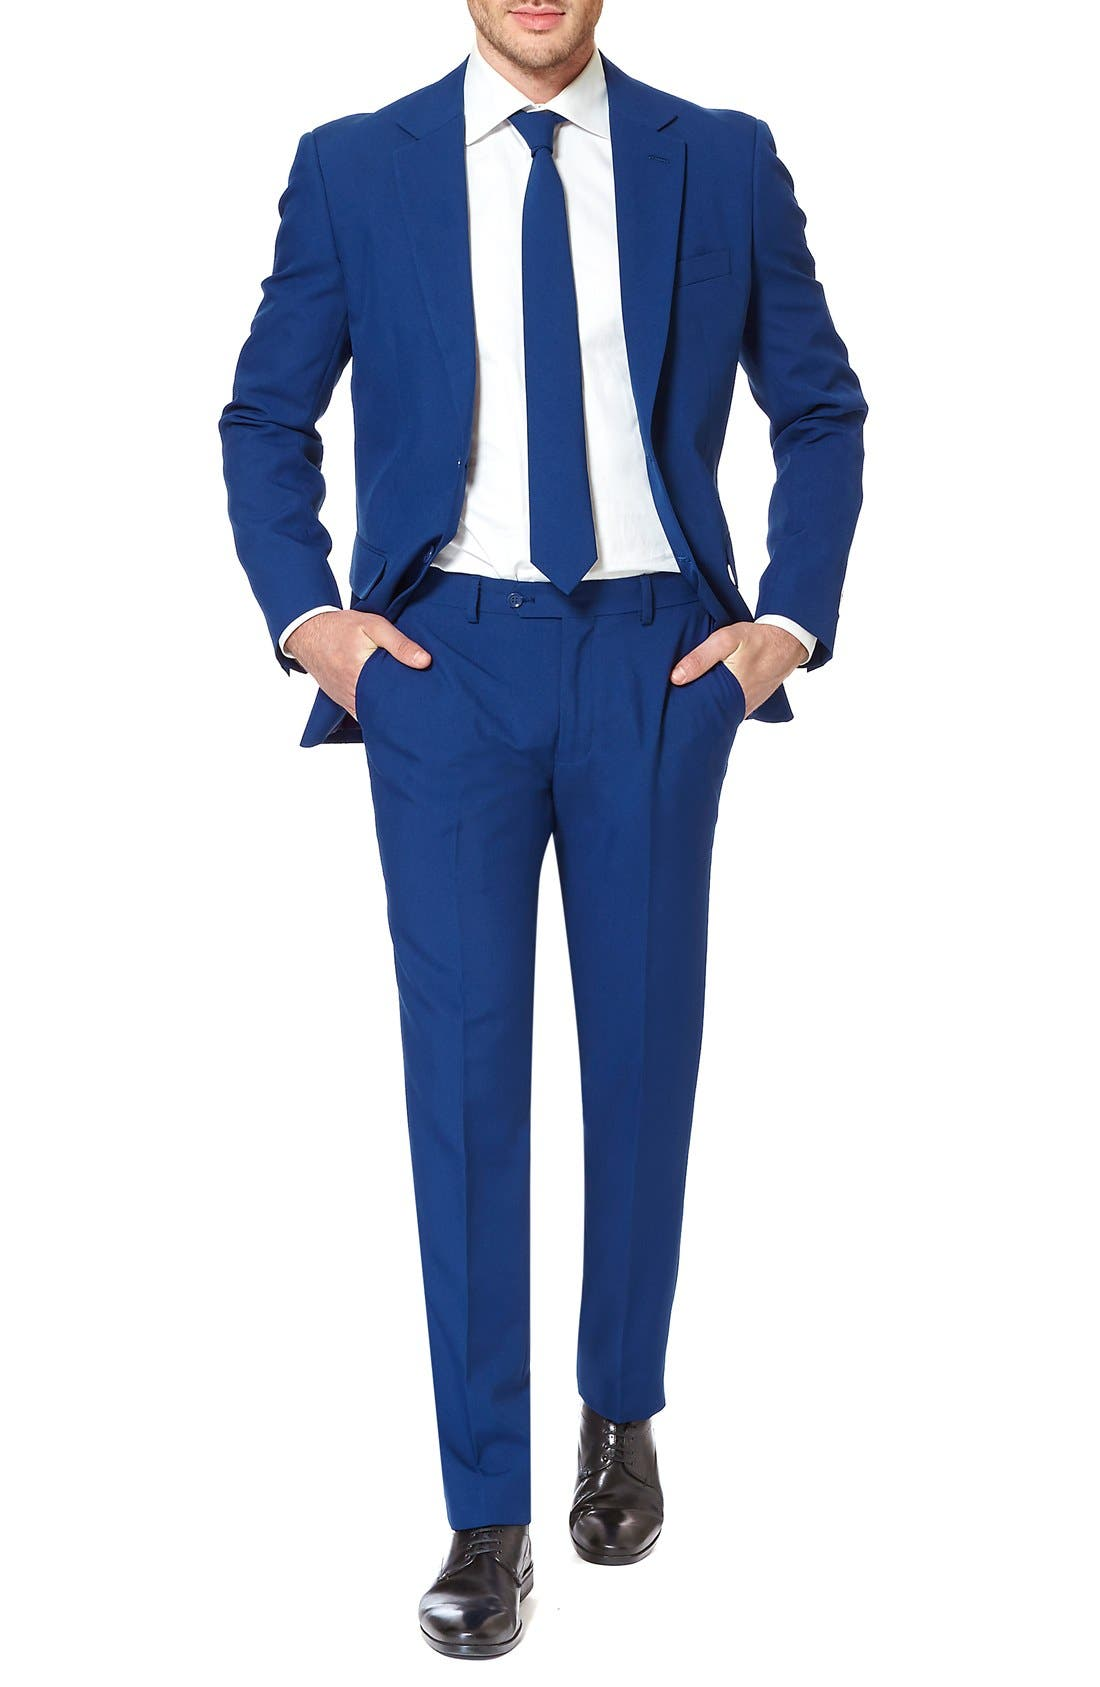 Alternate Image 1 Selected - OppoSuits 'Navy Royale' Trim Fit Two-Piece Suit with Tie